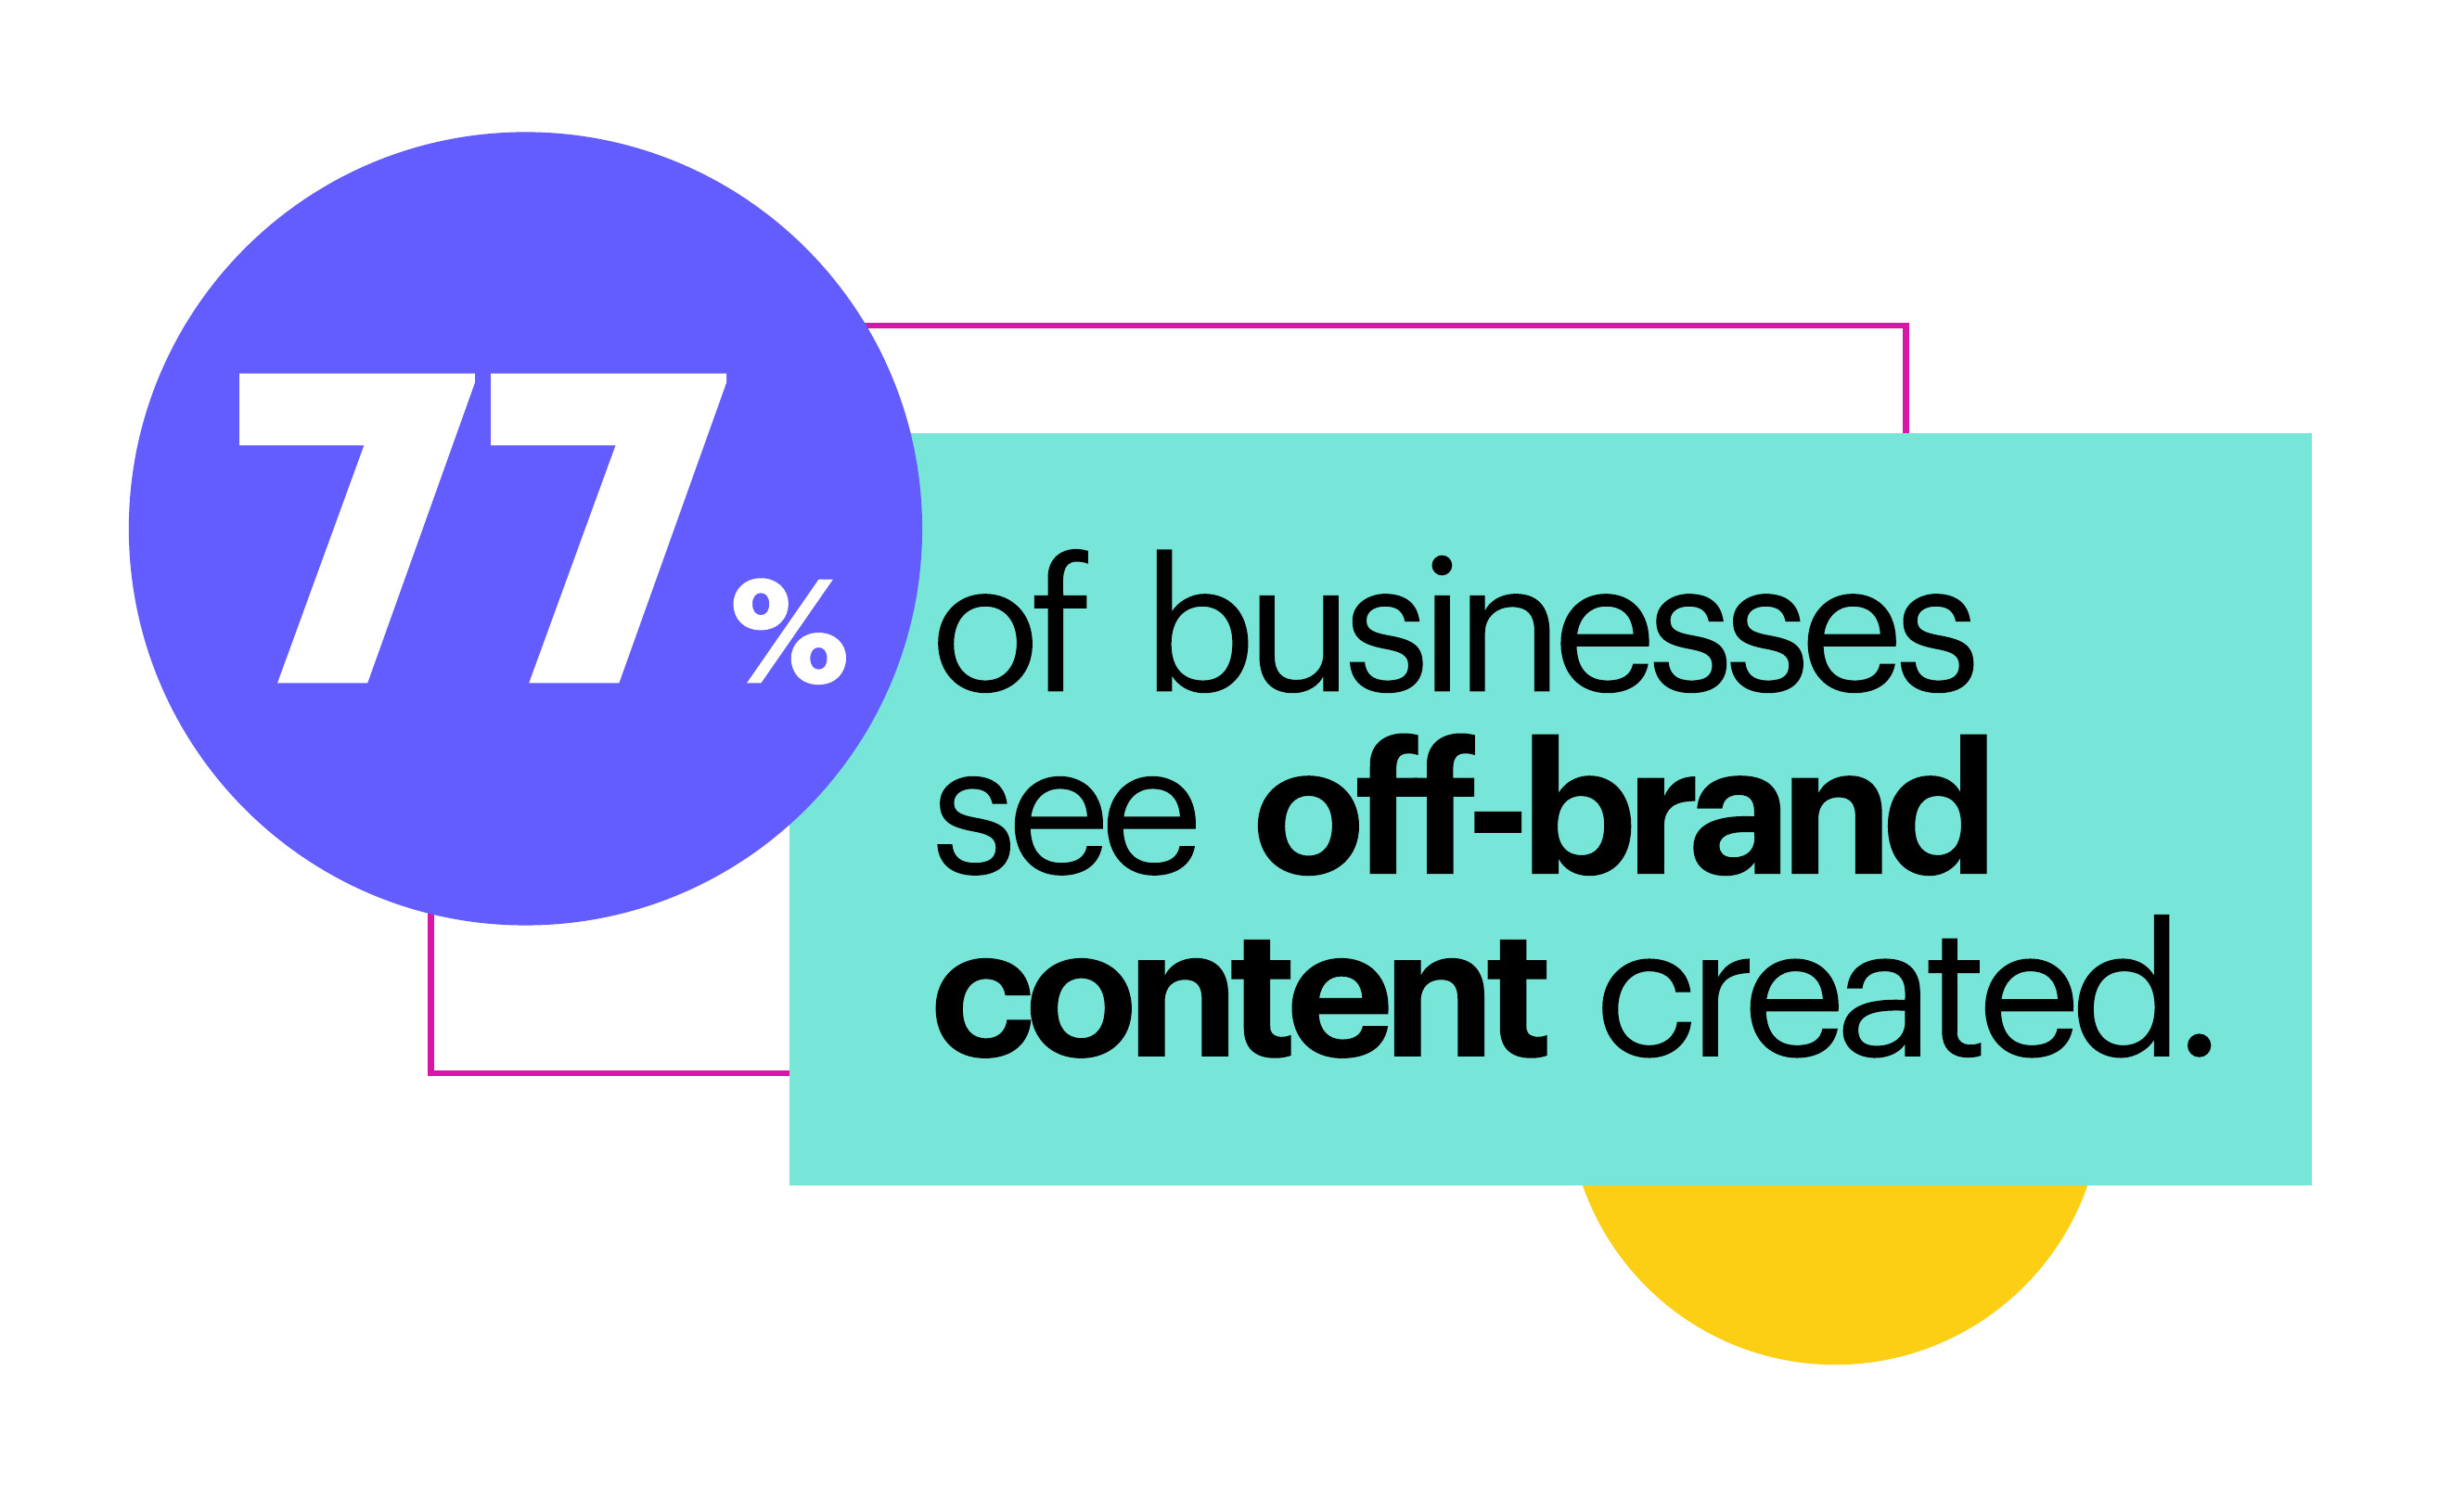 77% of businesses see off-brand content created.